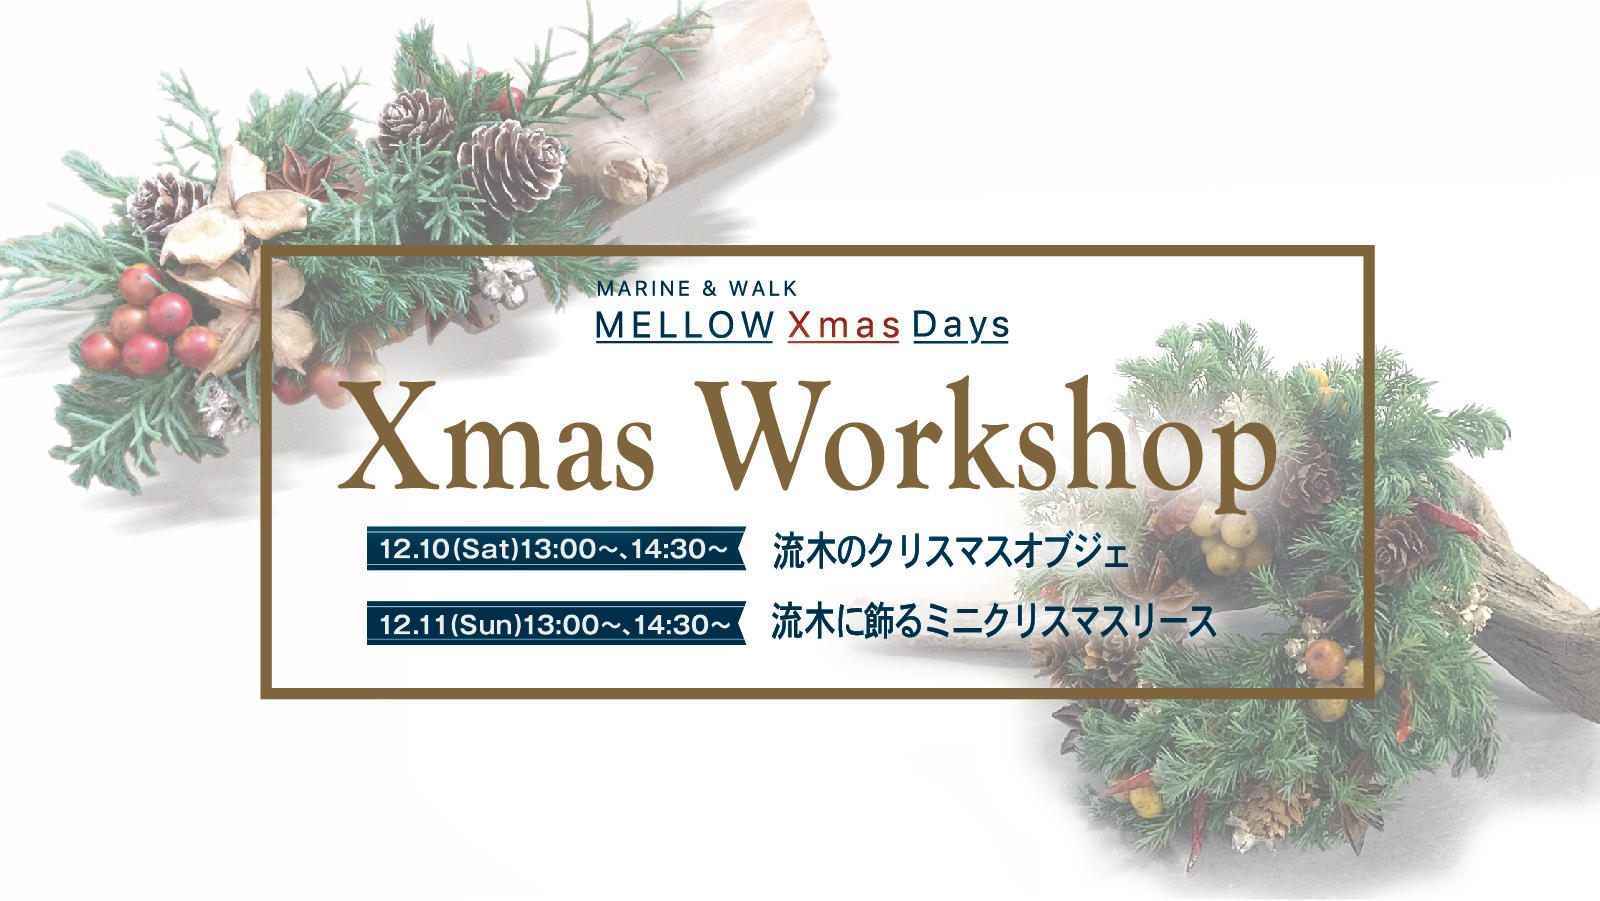 Xmas Workshop